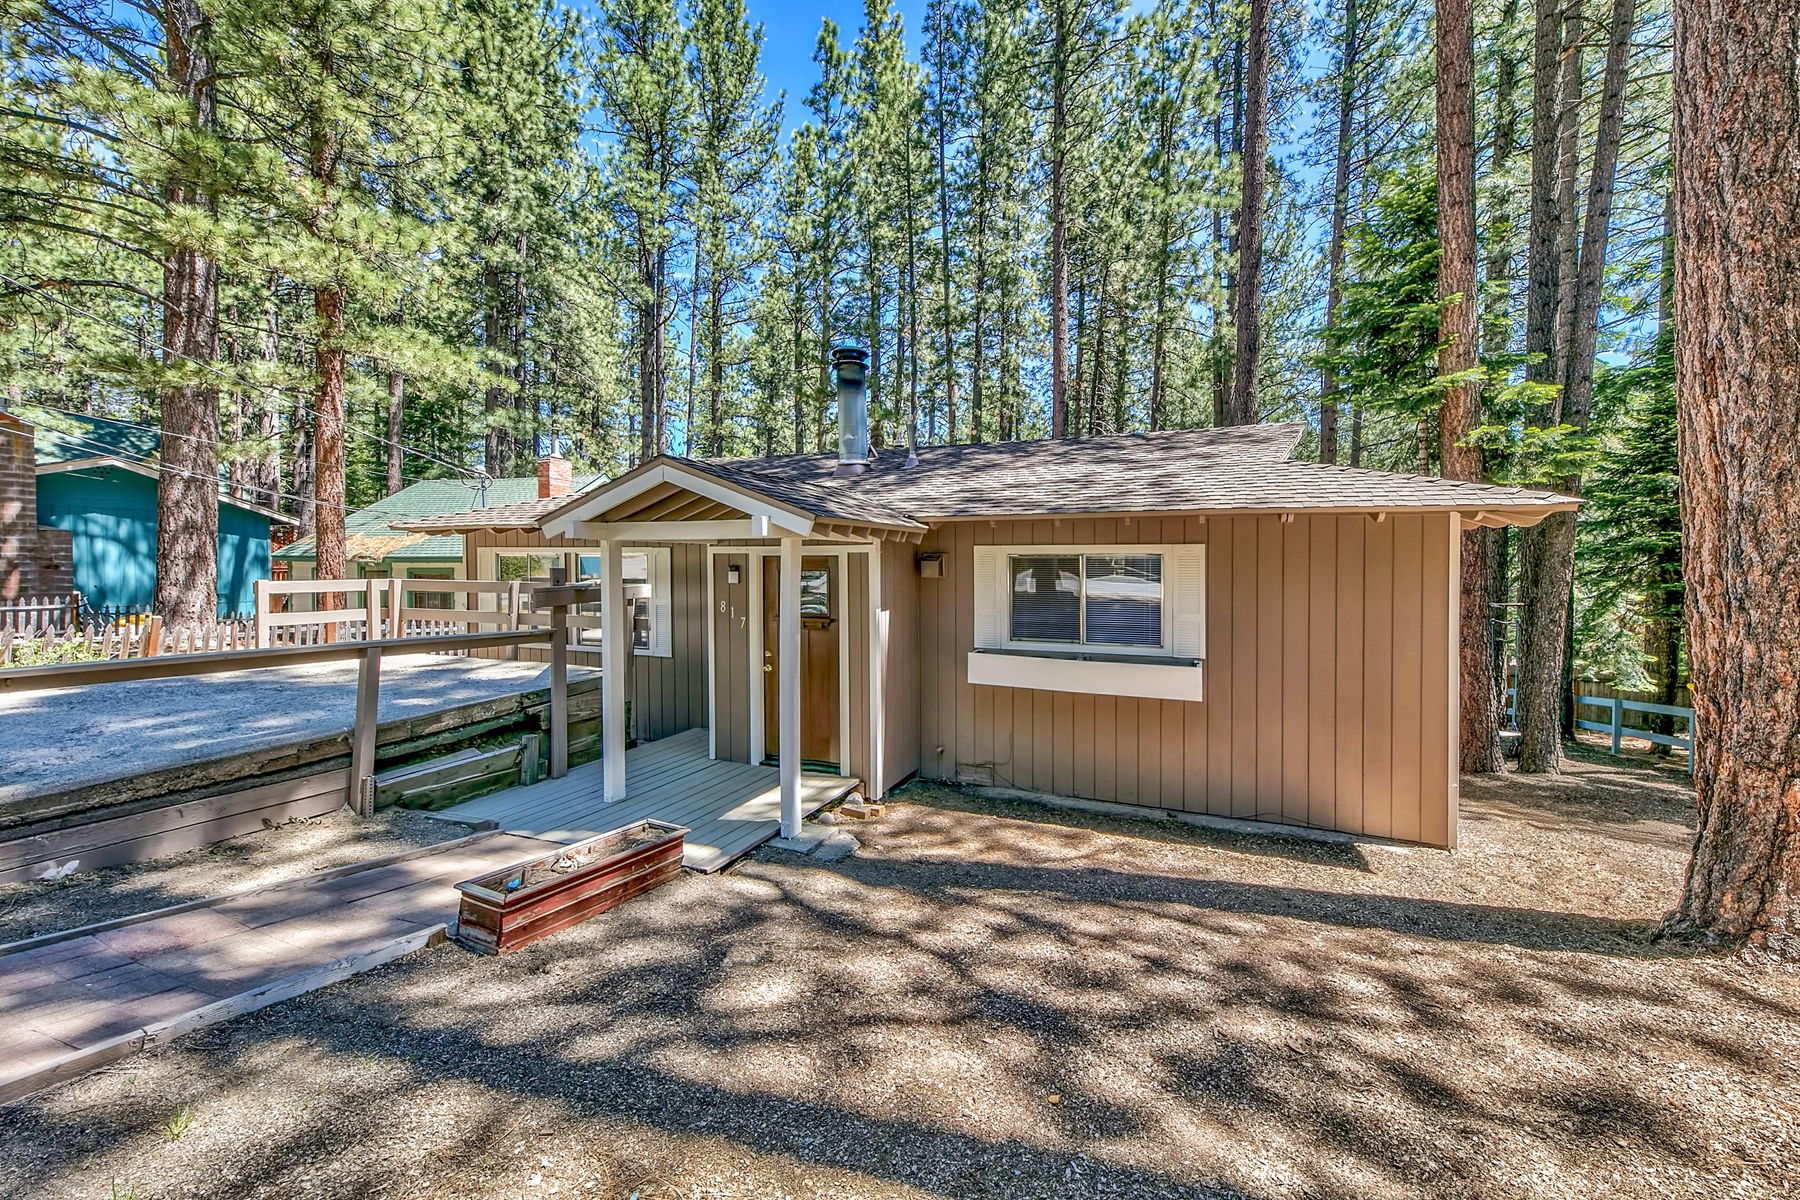 Single Family Homes for Active at 817 Tata Lane, South Lake Tahoe, CA 96150 817 Tata Lane South Lake Tahoe, California 96150 United States